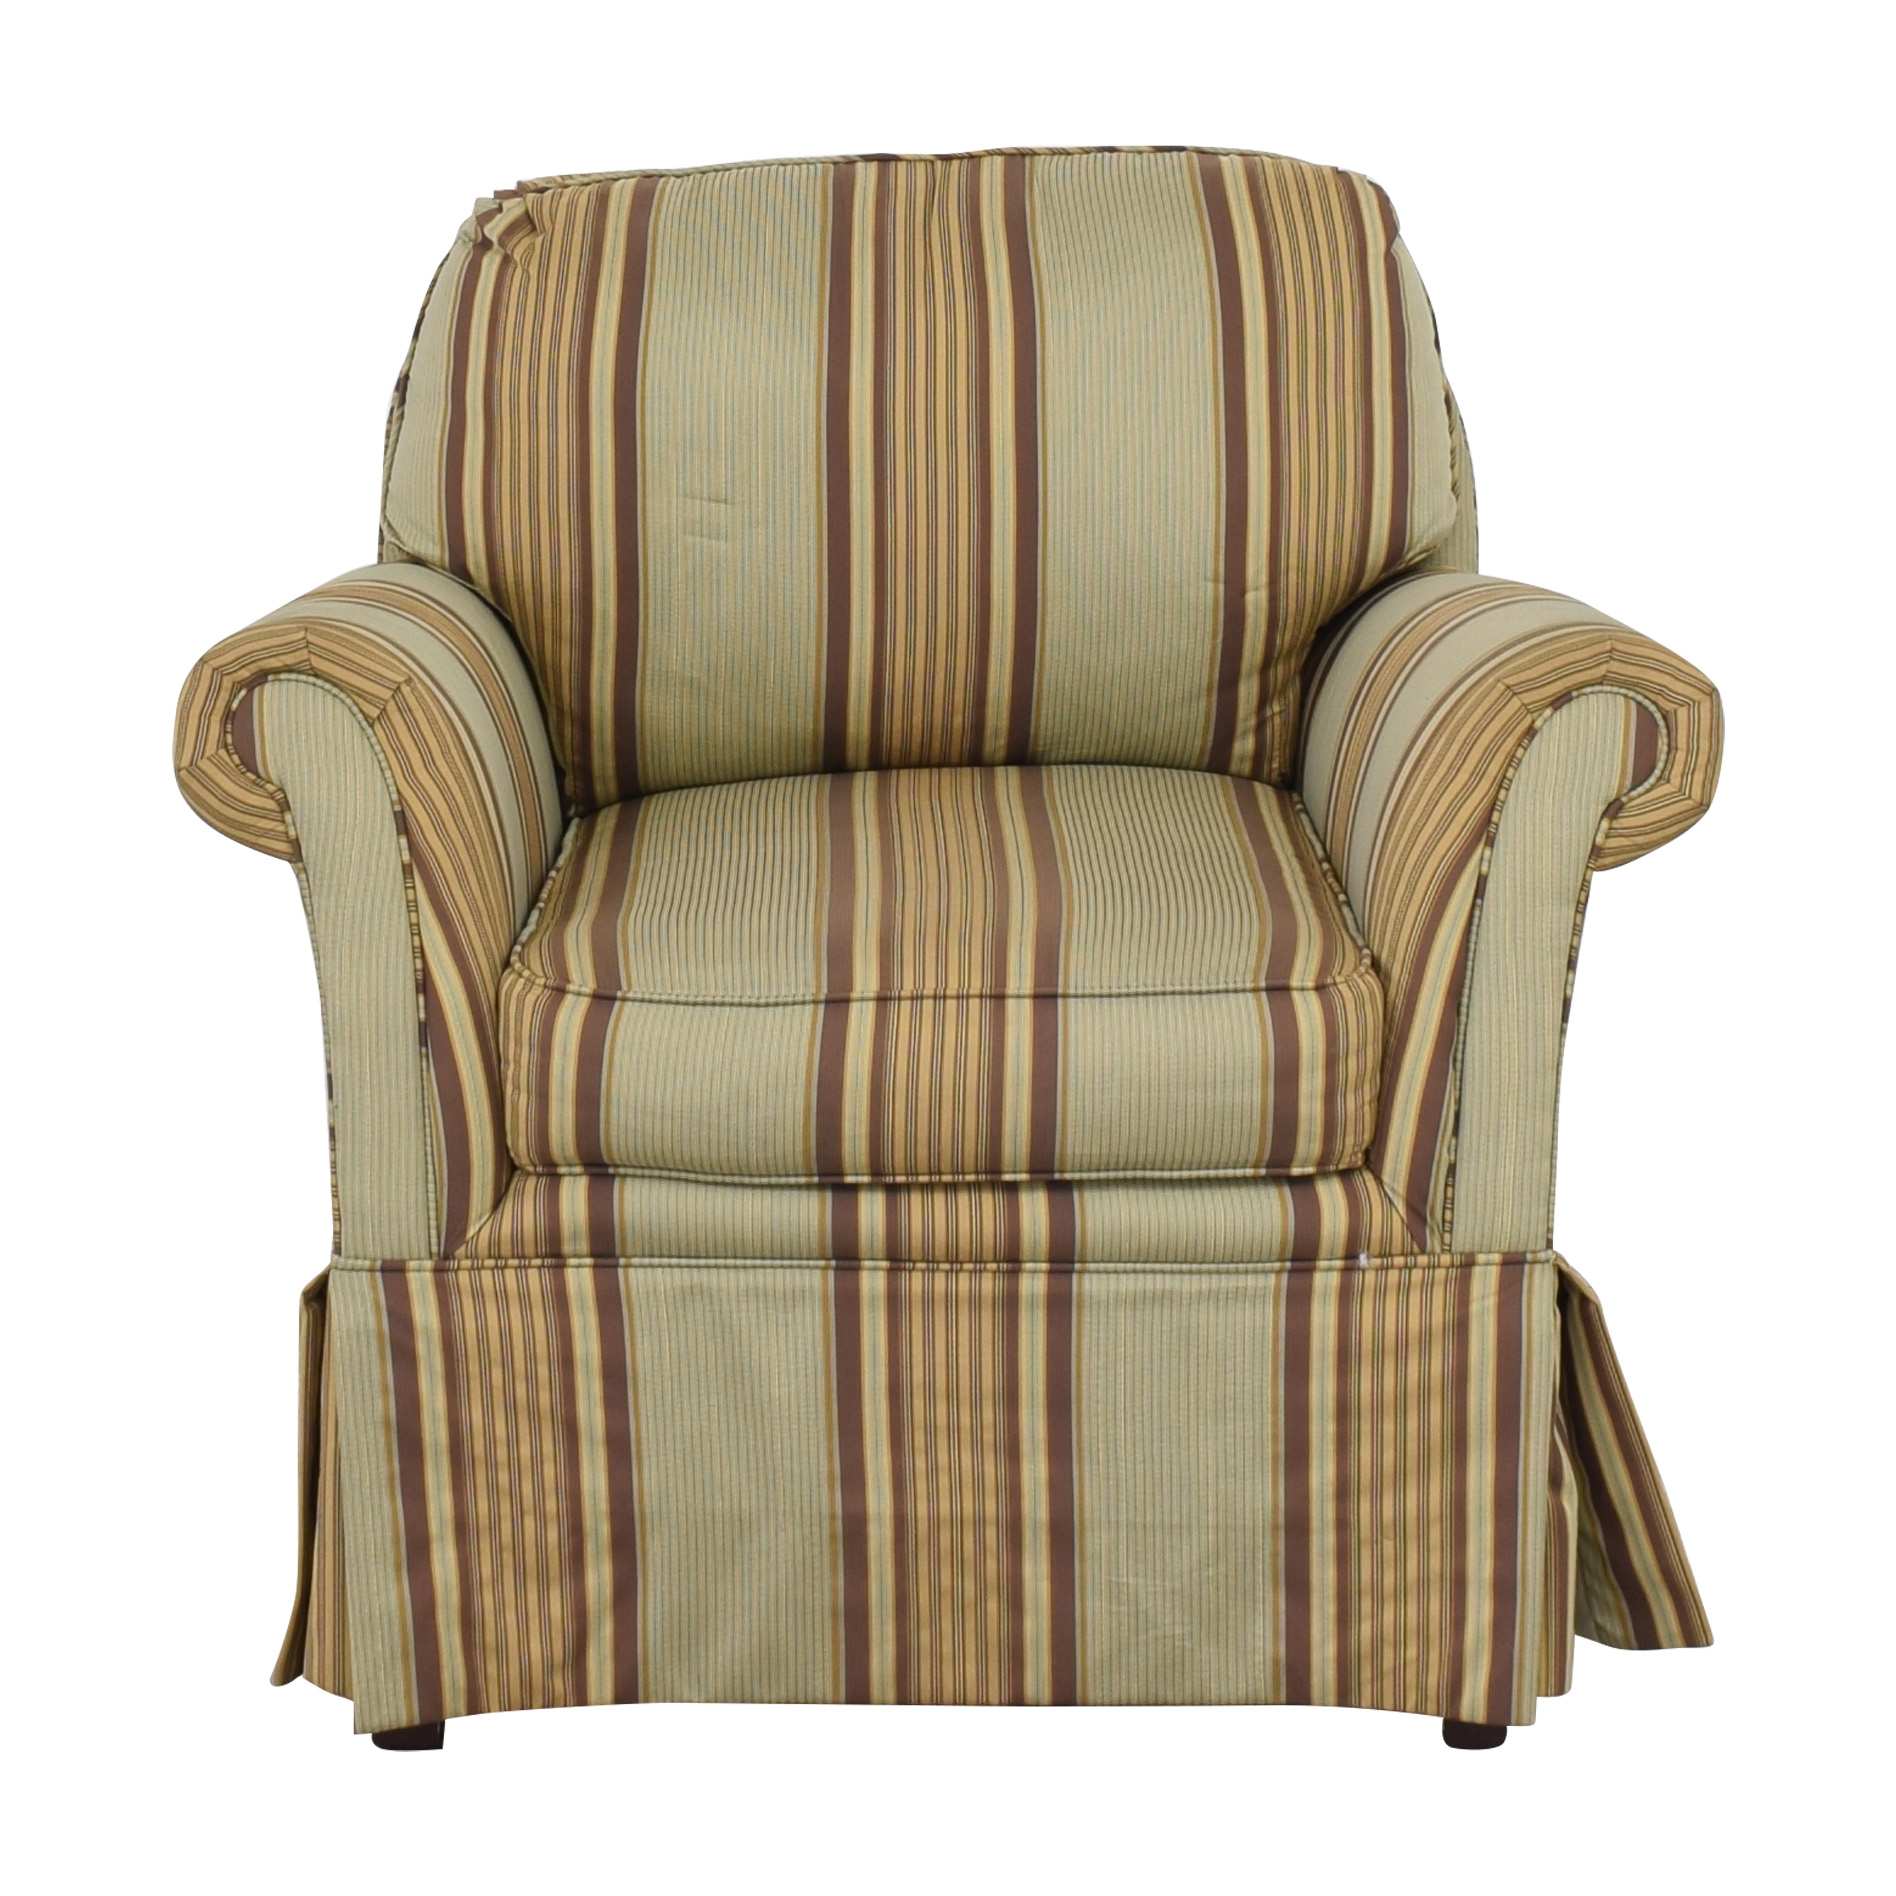 Harden Harden Roll Arm Lounge Chair Multi-colored